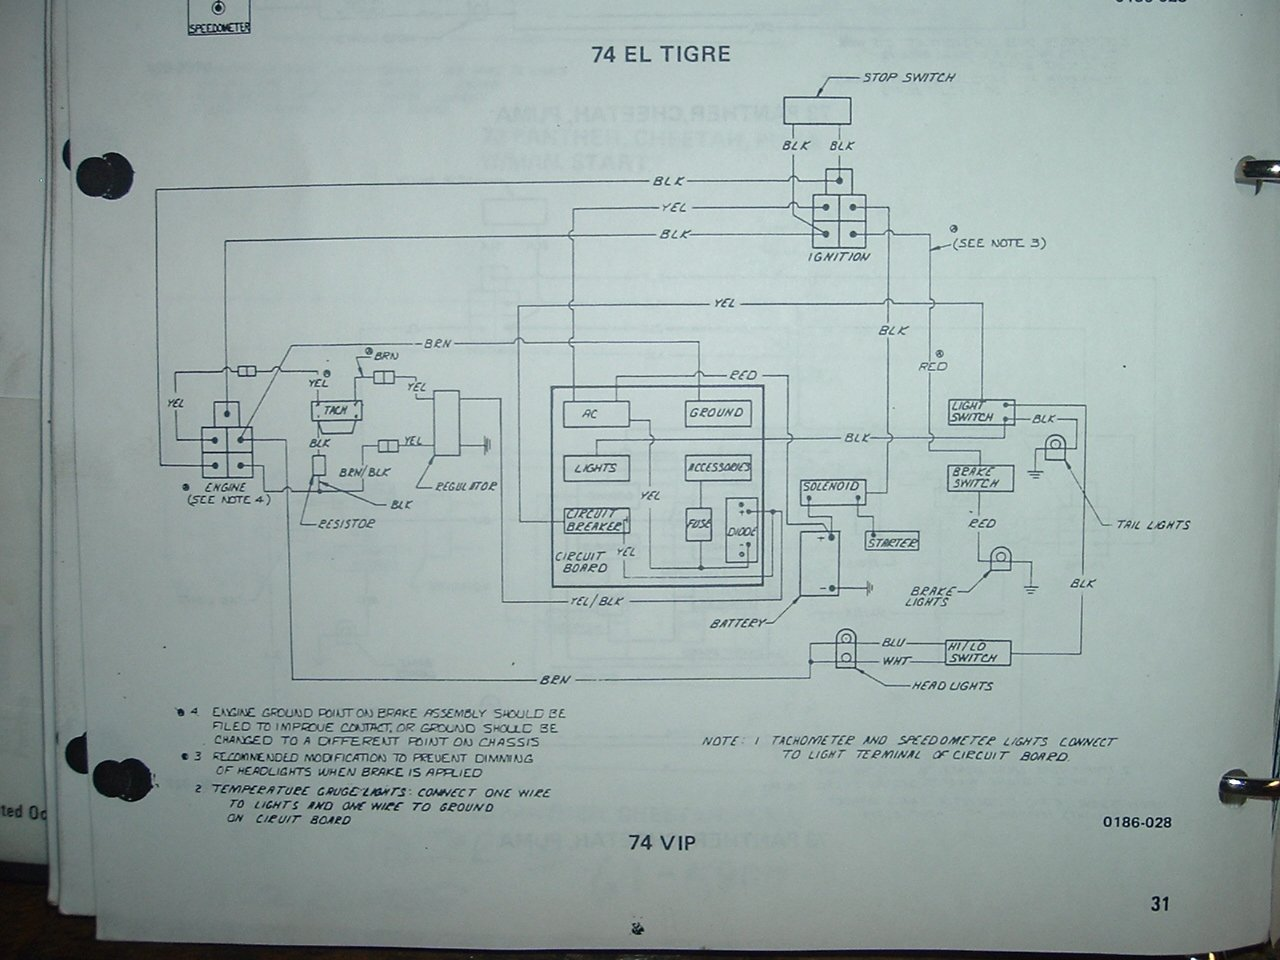 hight resolution of arctic cat wildcat 650 wiring diagram trusted wiring diagrams u2022 grand national wiring diagram 1992 wildcat 700 wiring diagram